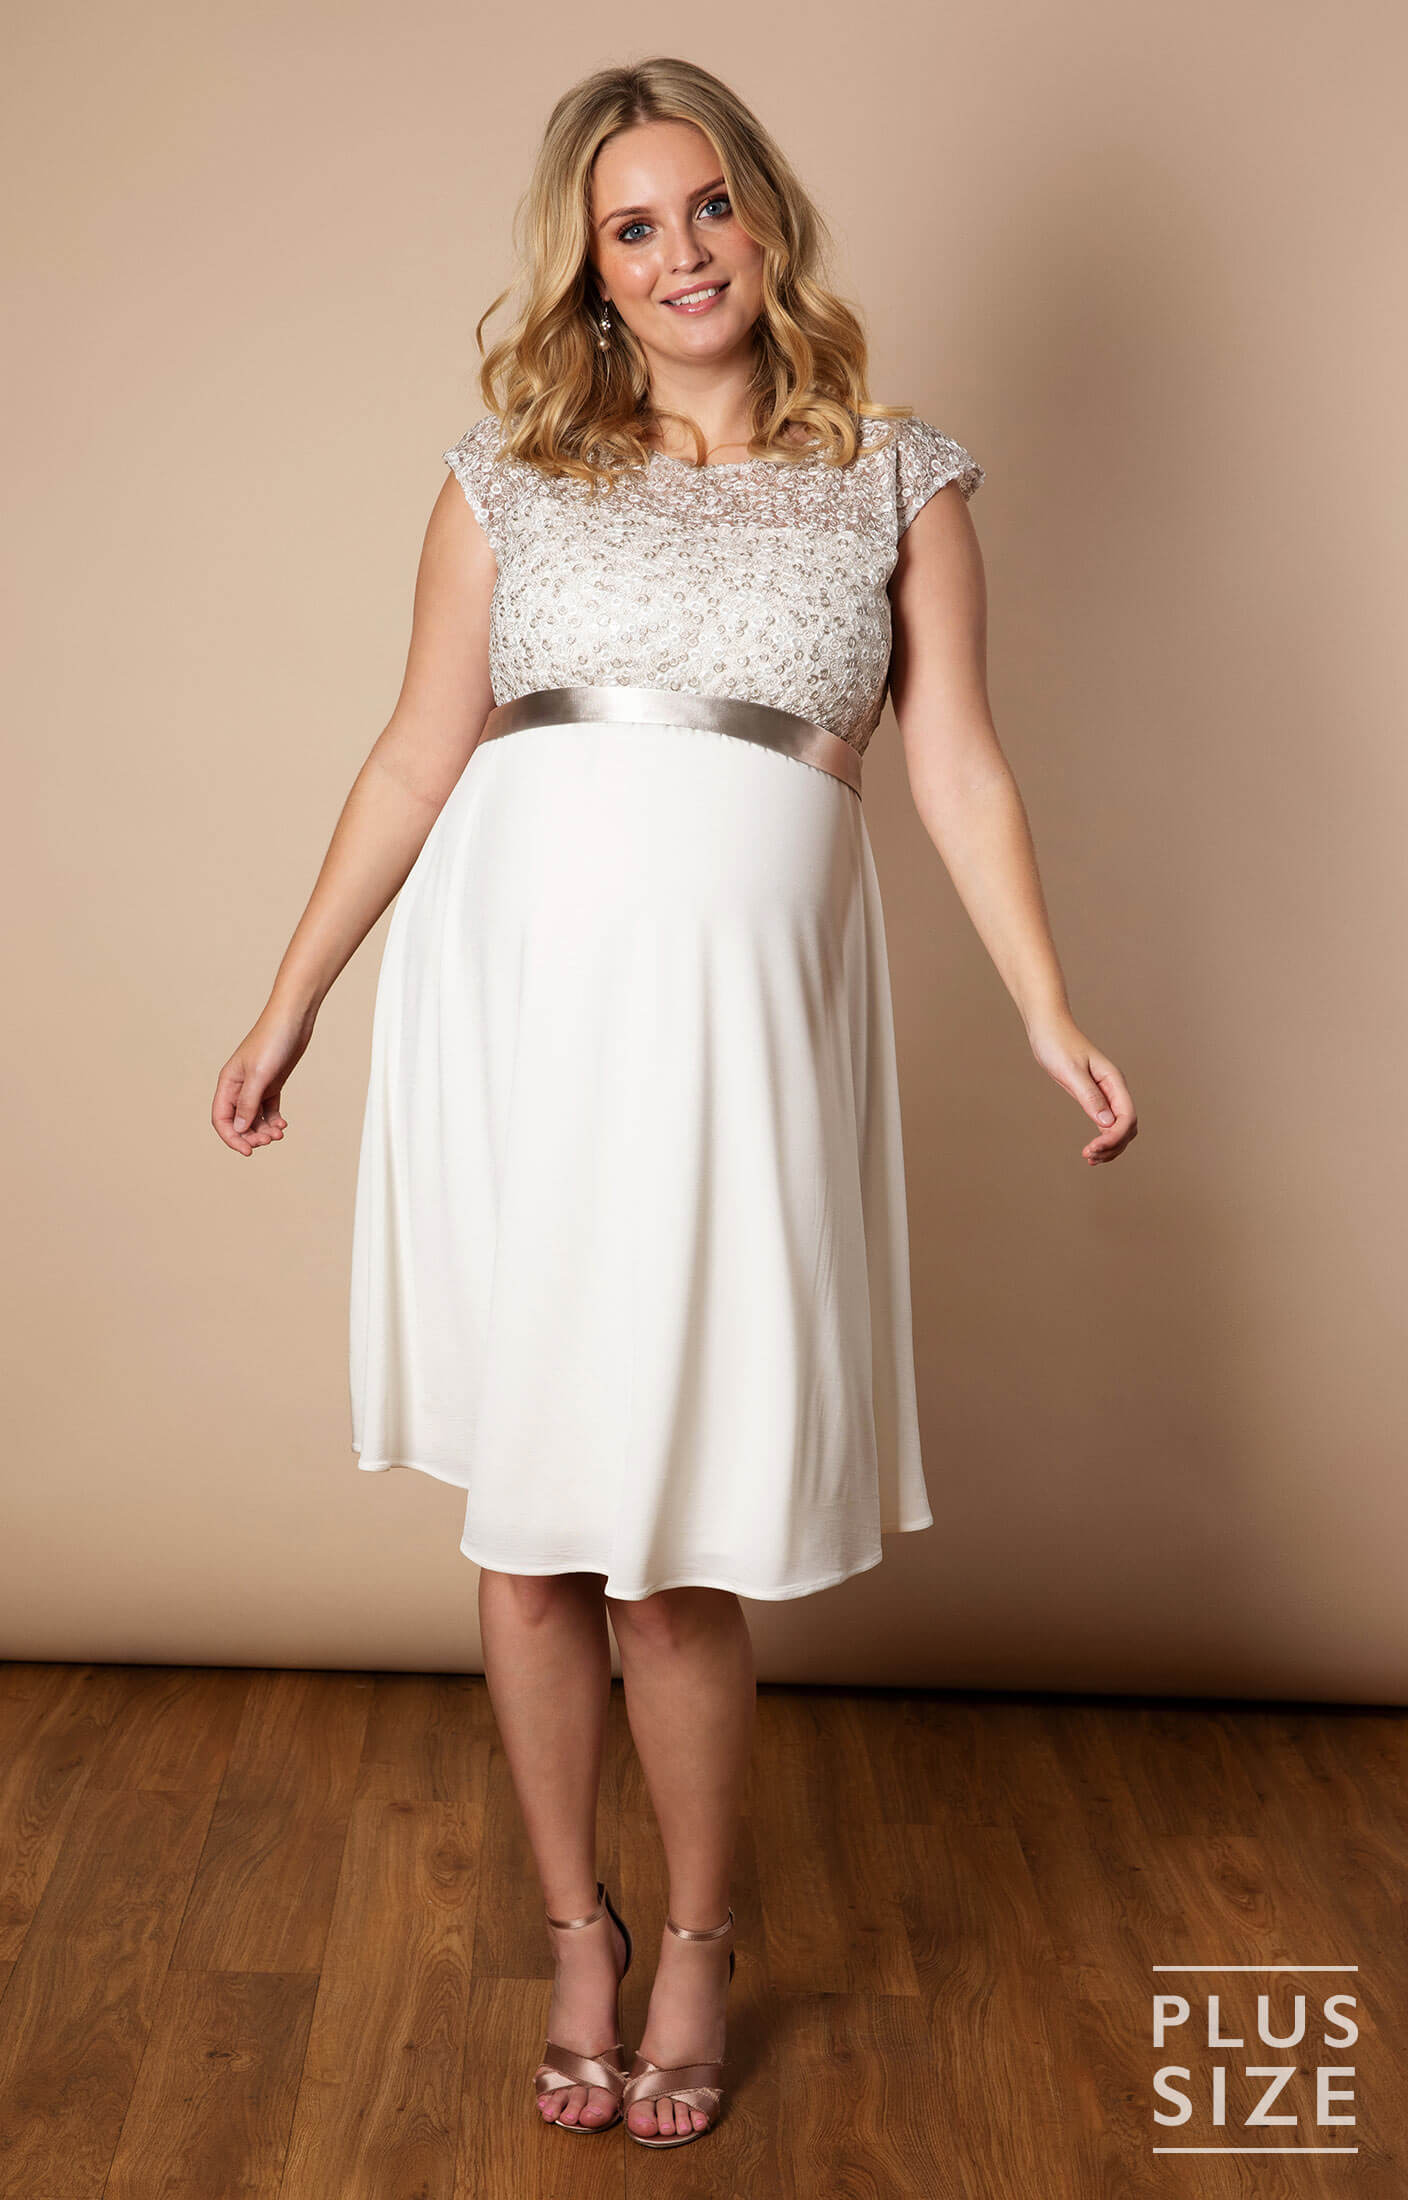 Mia Plus Size Maternity Dress Ivory - Maternity Wedding Dresses ...